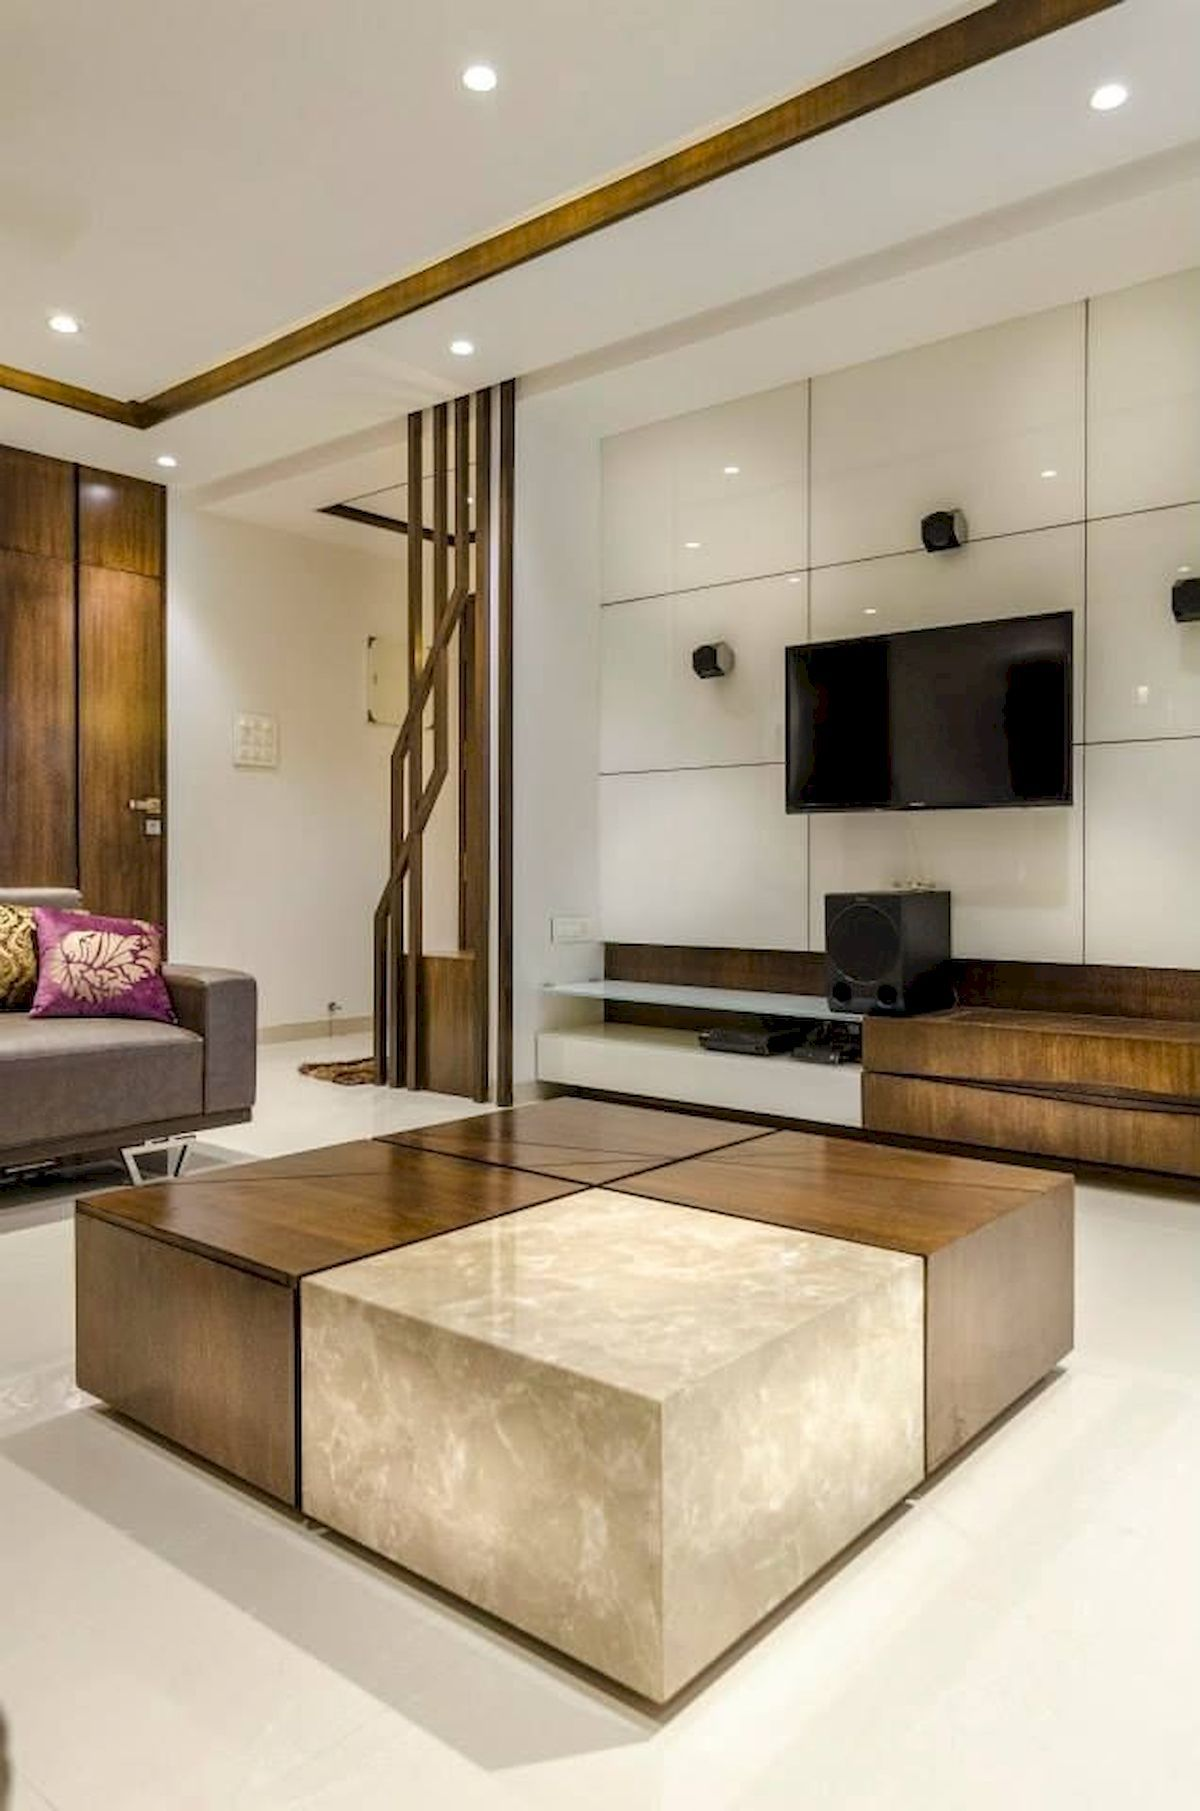 8 Tv Wall Design Ideas For Your Living Room: Coffee Table Ideas For Your Living Room